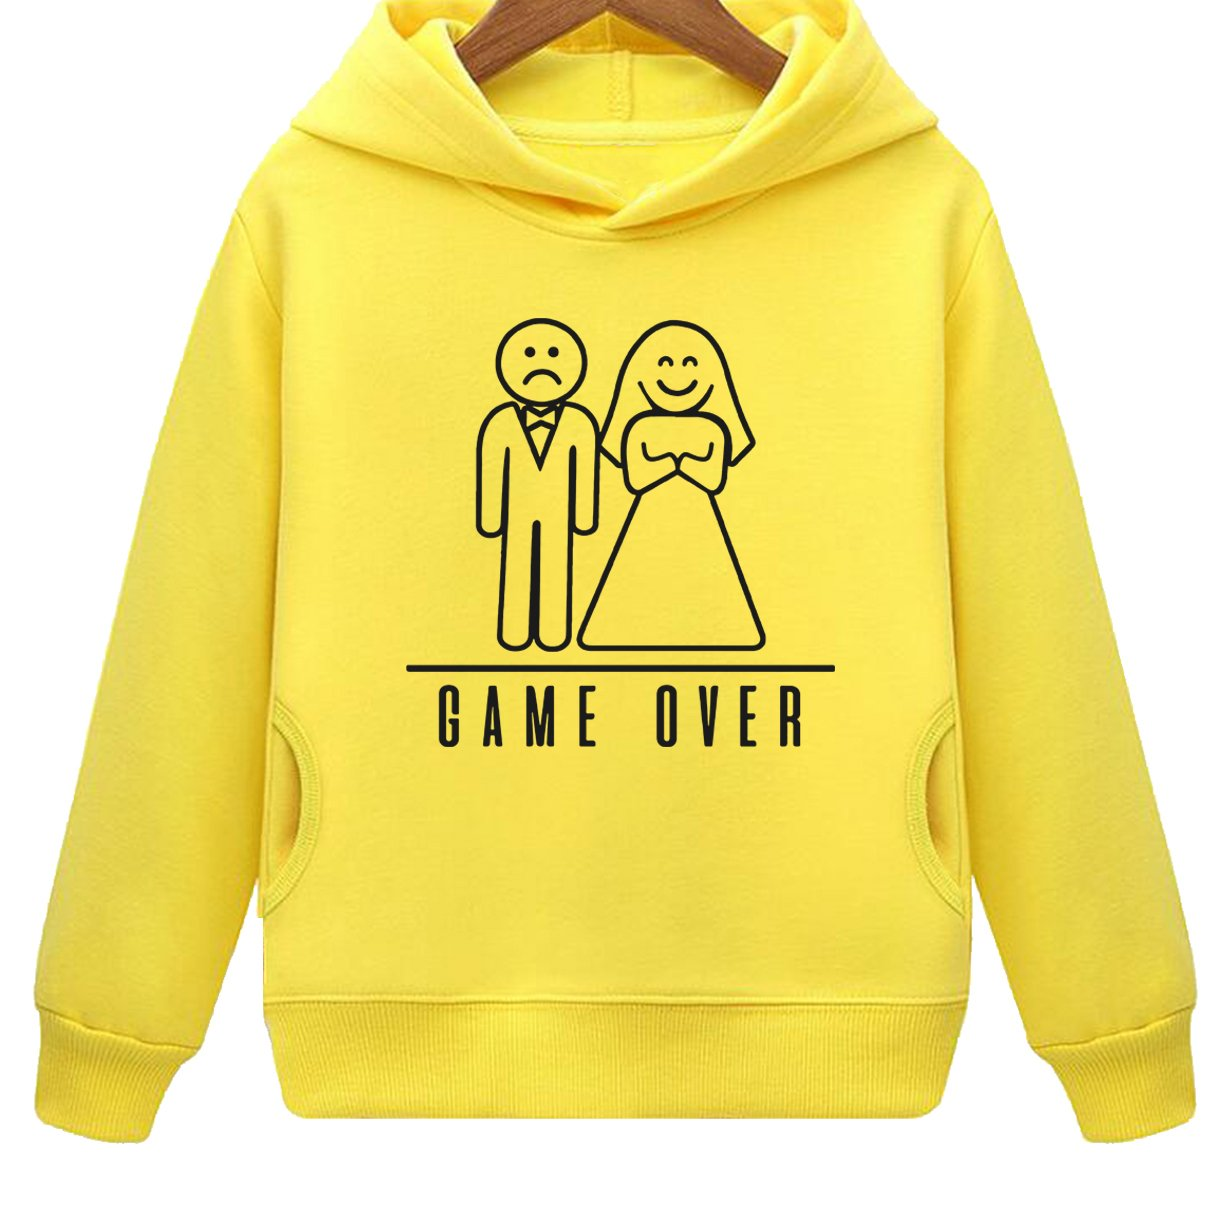 Kids Two Pockets Bachelor Party Funny Wedding Game Over Humor Hoodie (3T,Yellow)